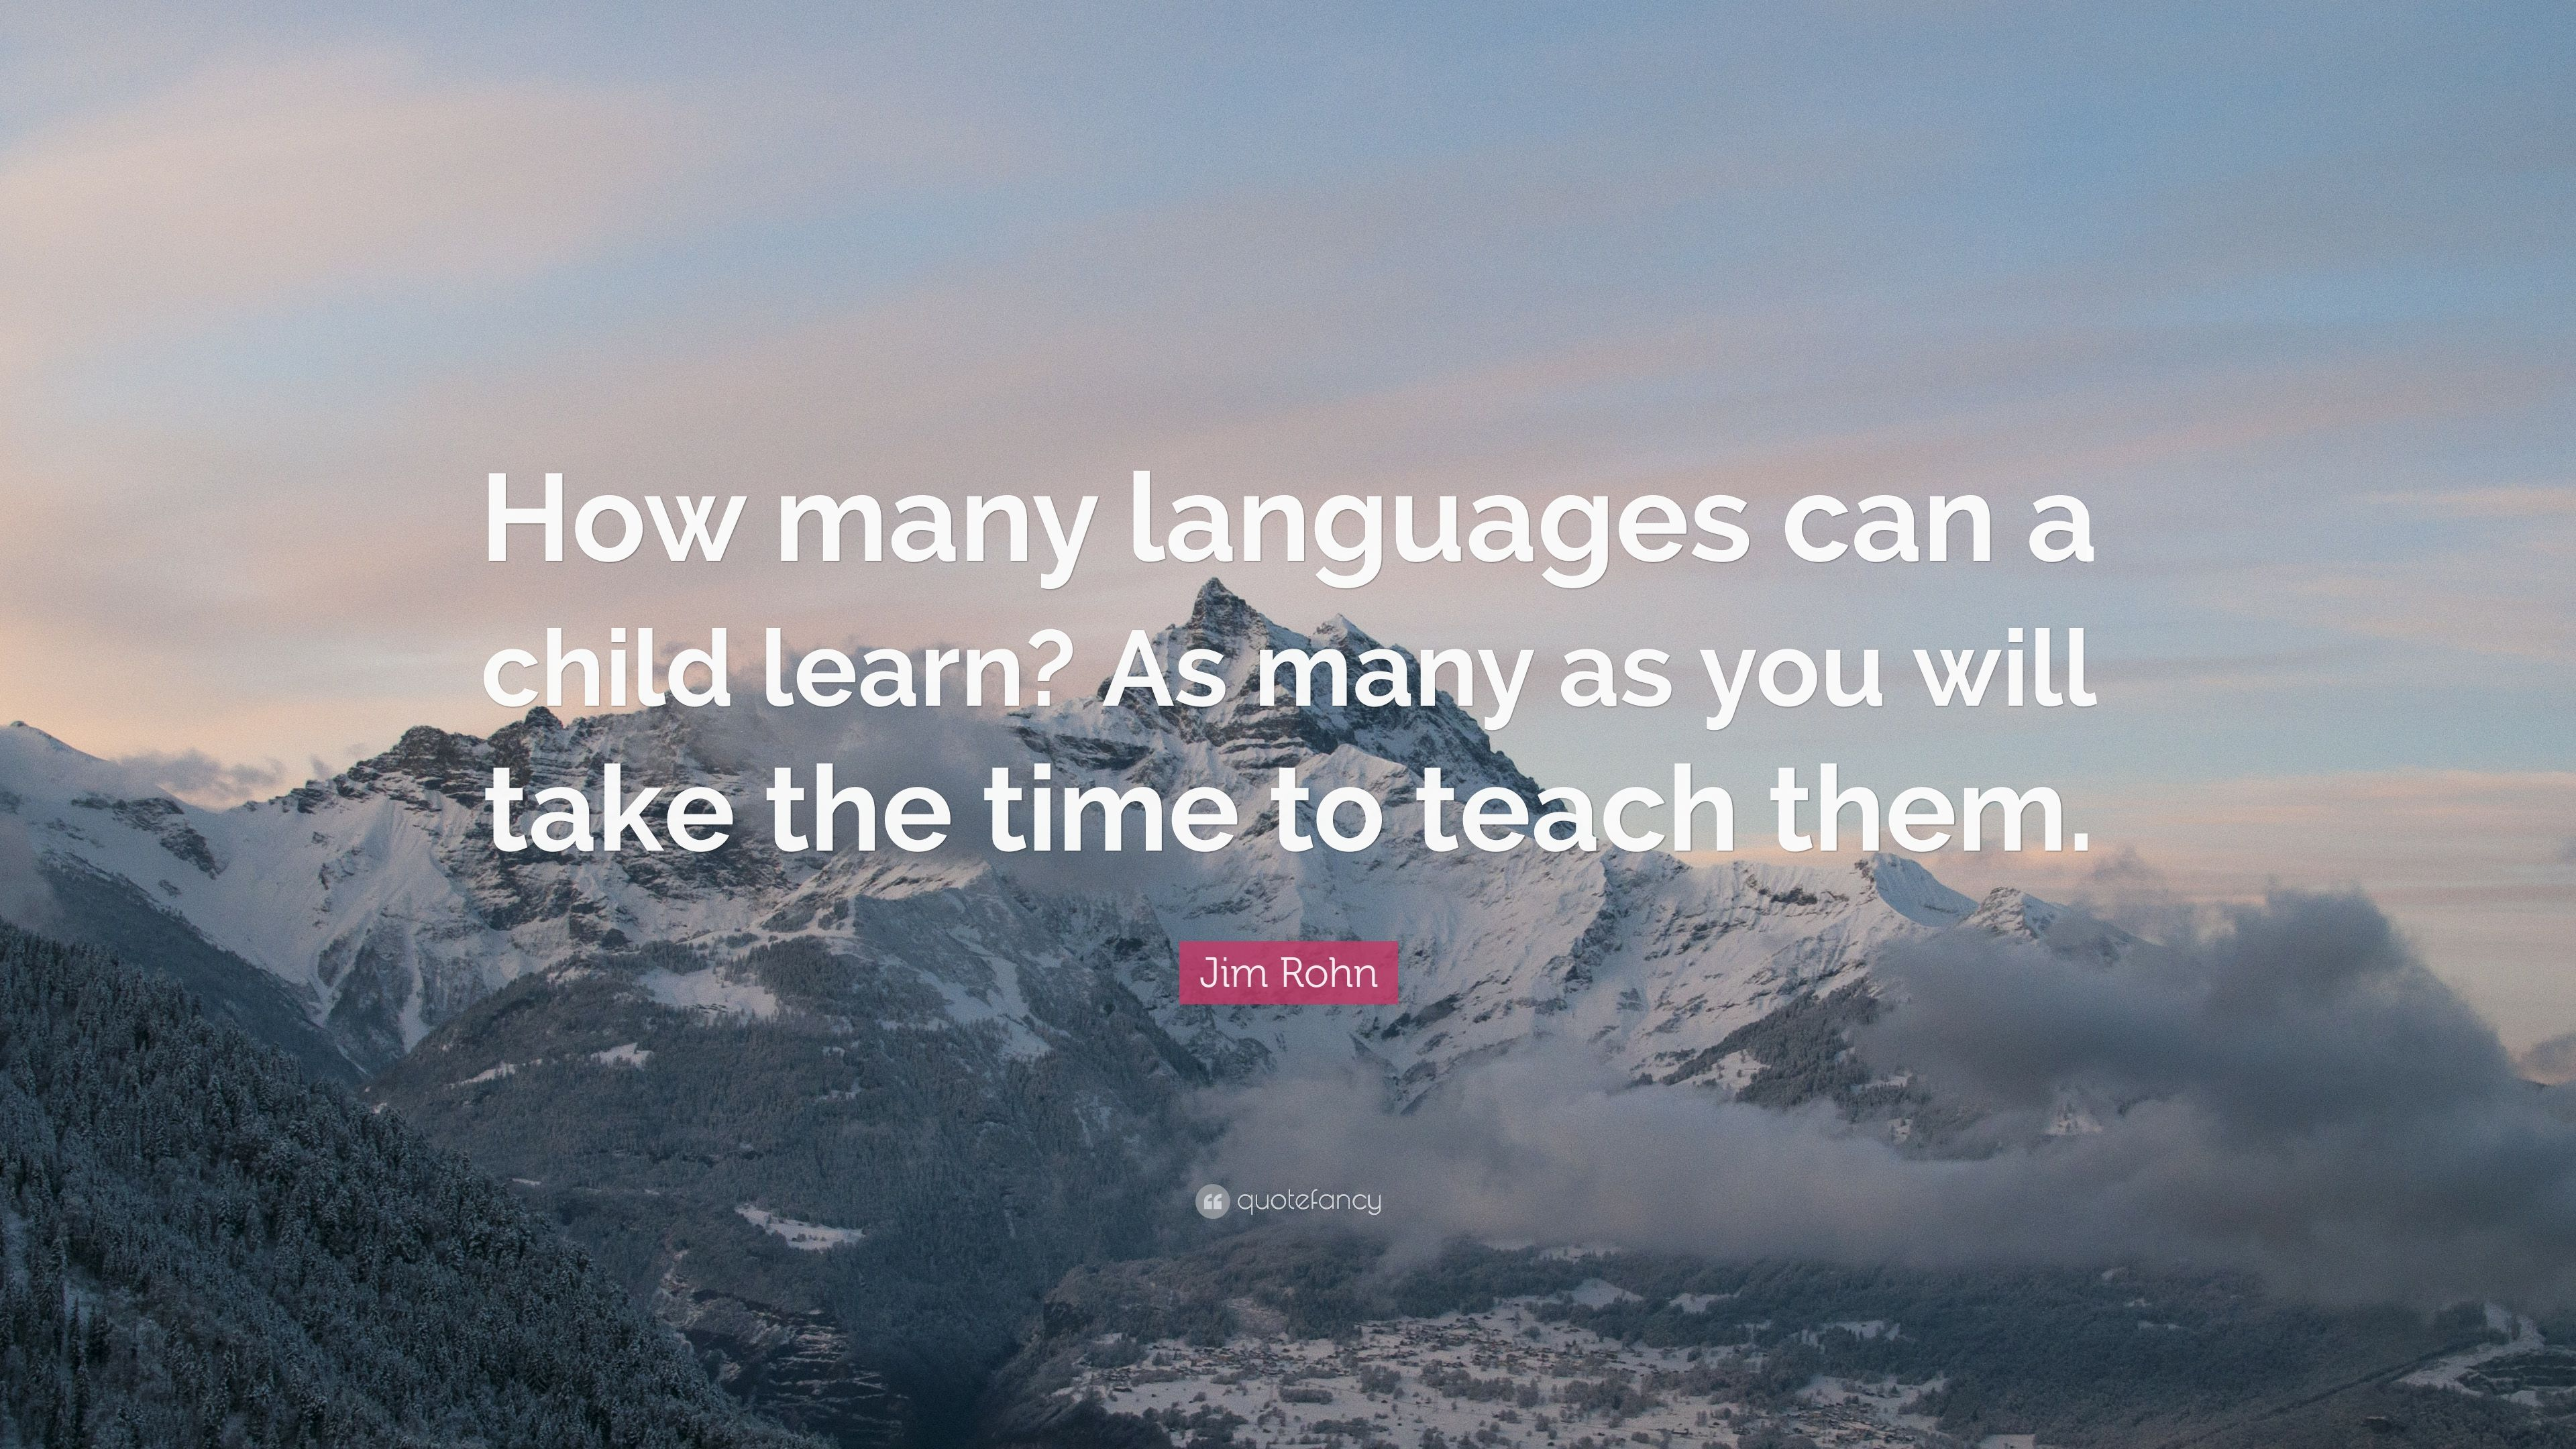 Jim Rohn Quote How Many Languages Can A Child Learn As Many As - How many languages on earth